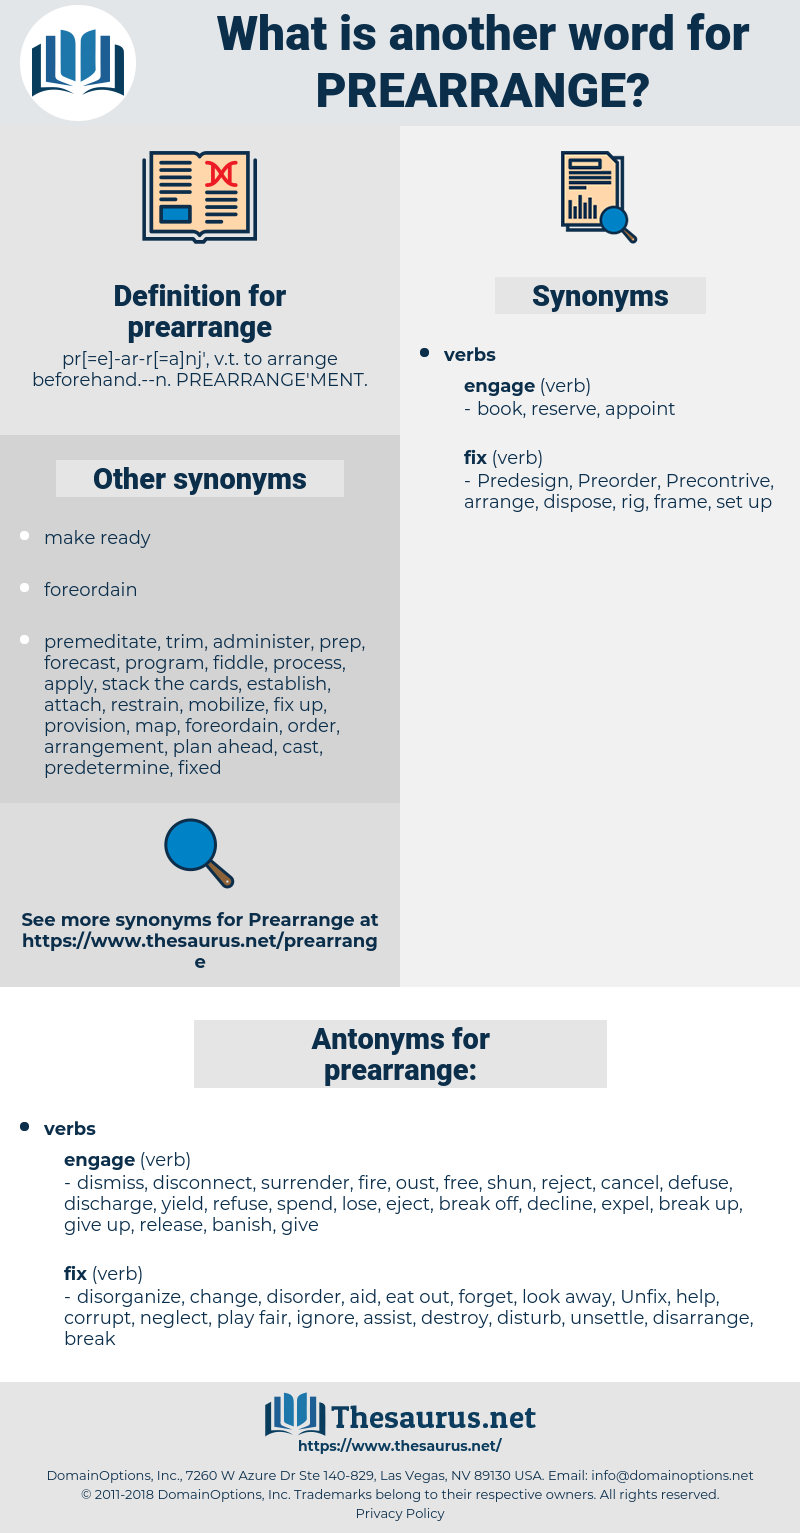 prearrange, synonym prearrange, another word for prearrange, words like prearrange, thesaurus prearrange